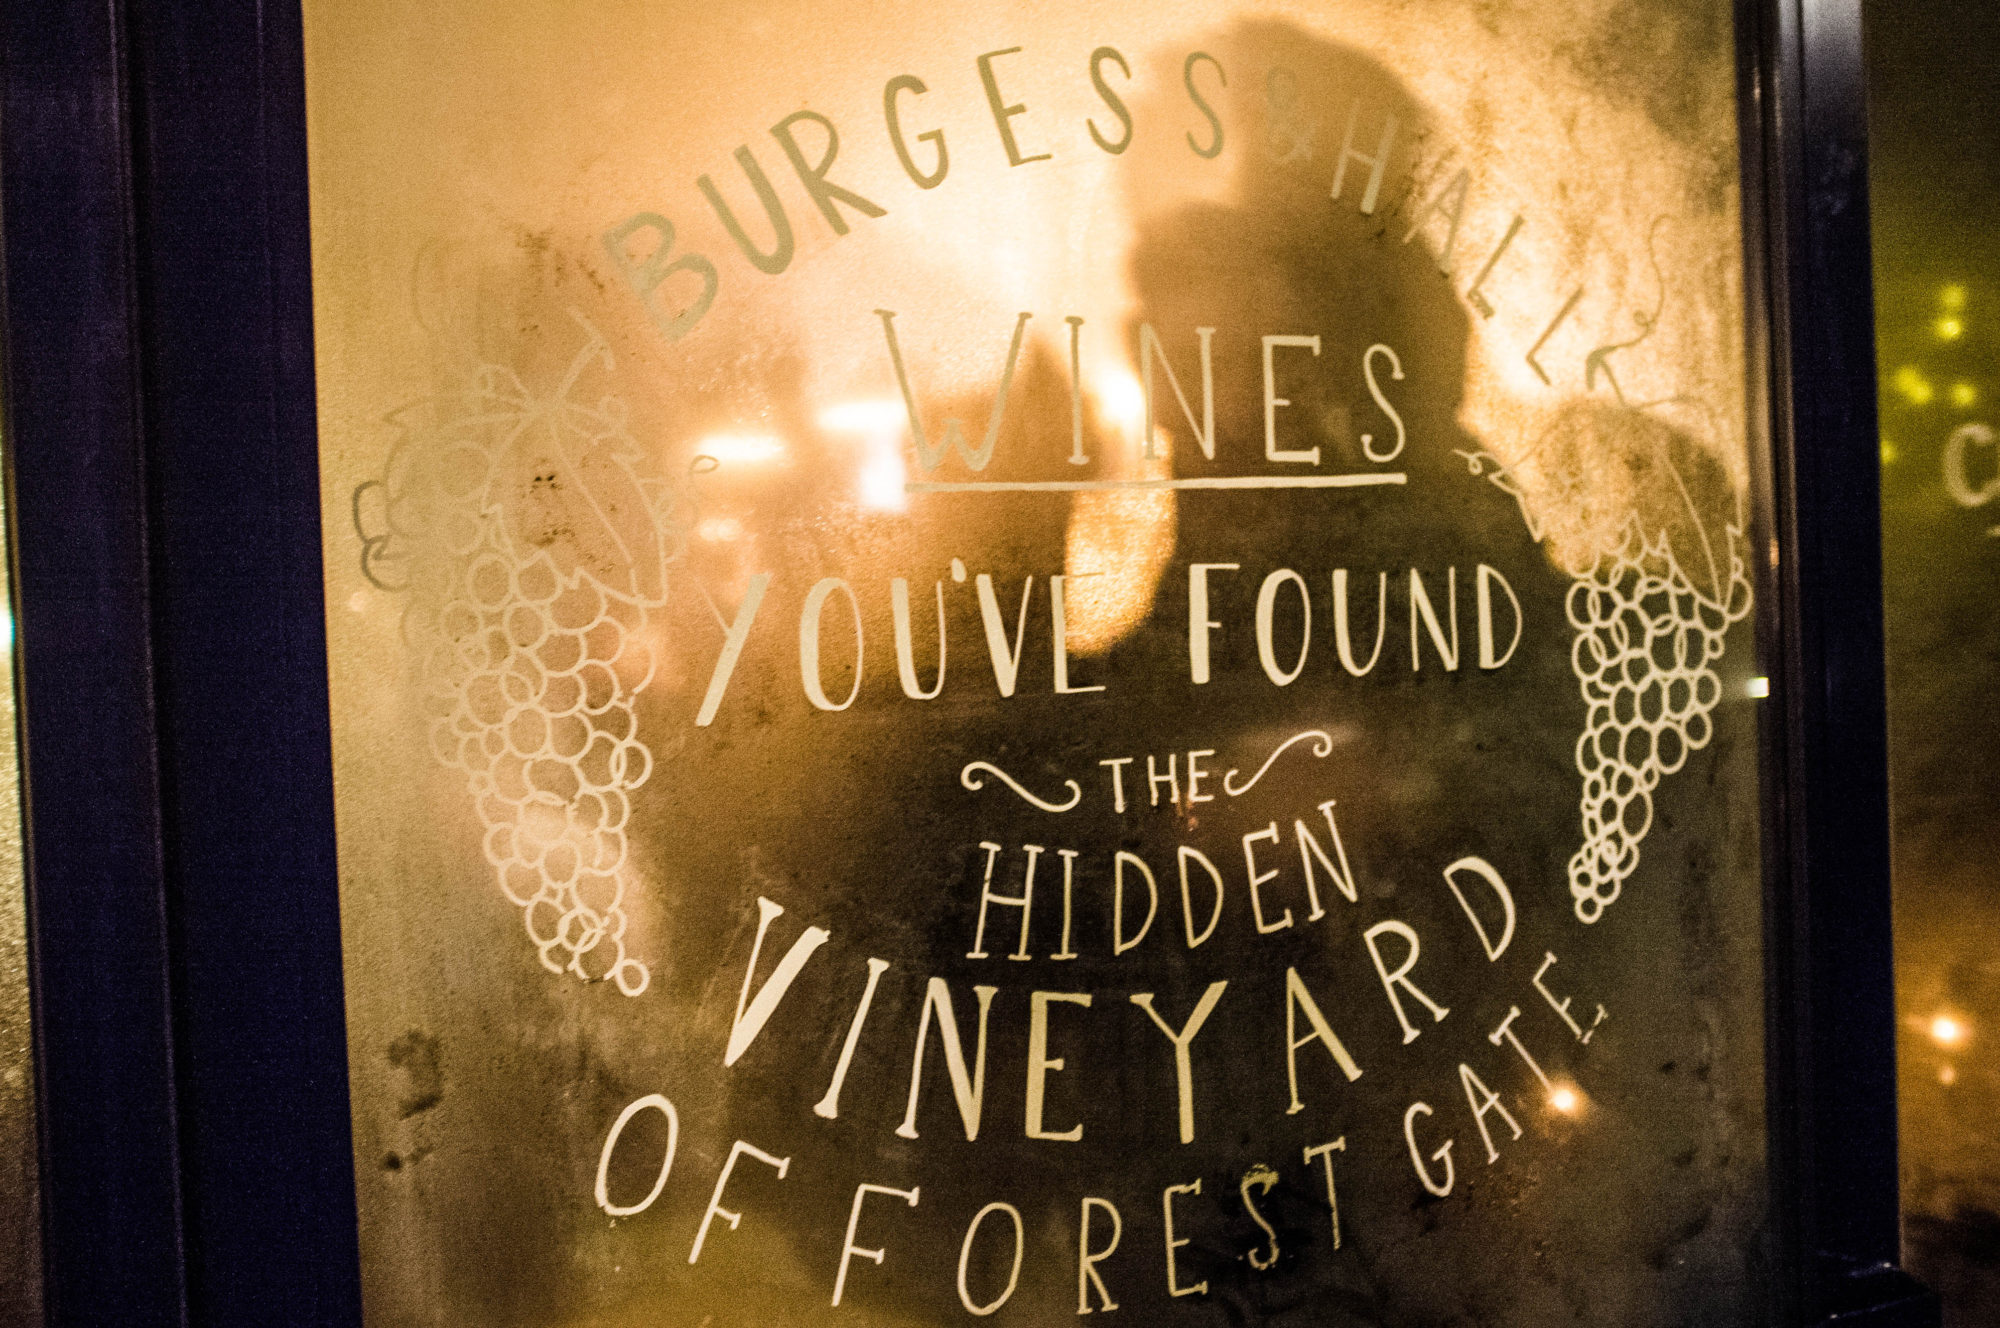 Burgess & Hall Wines